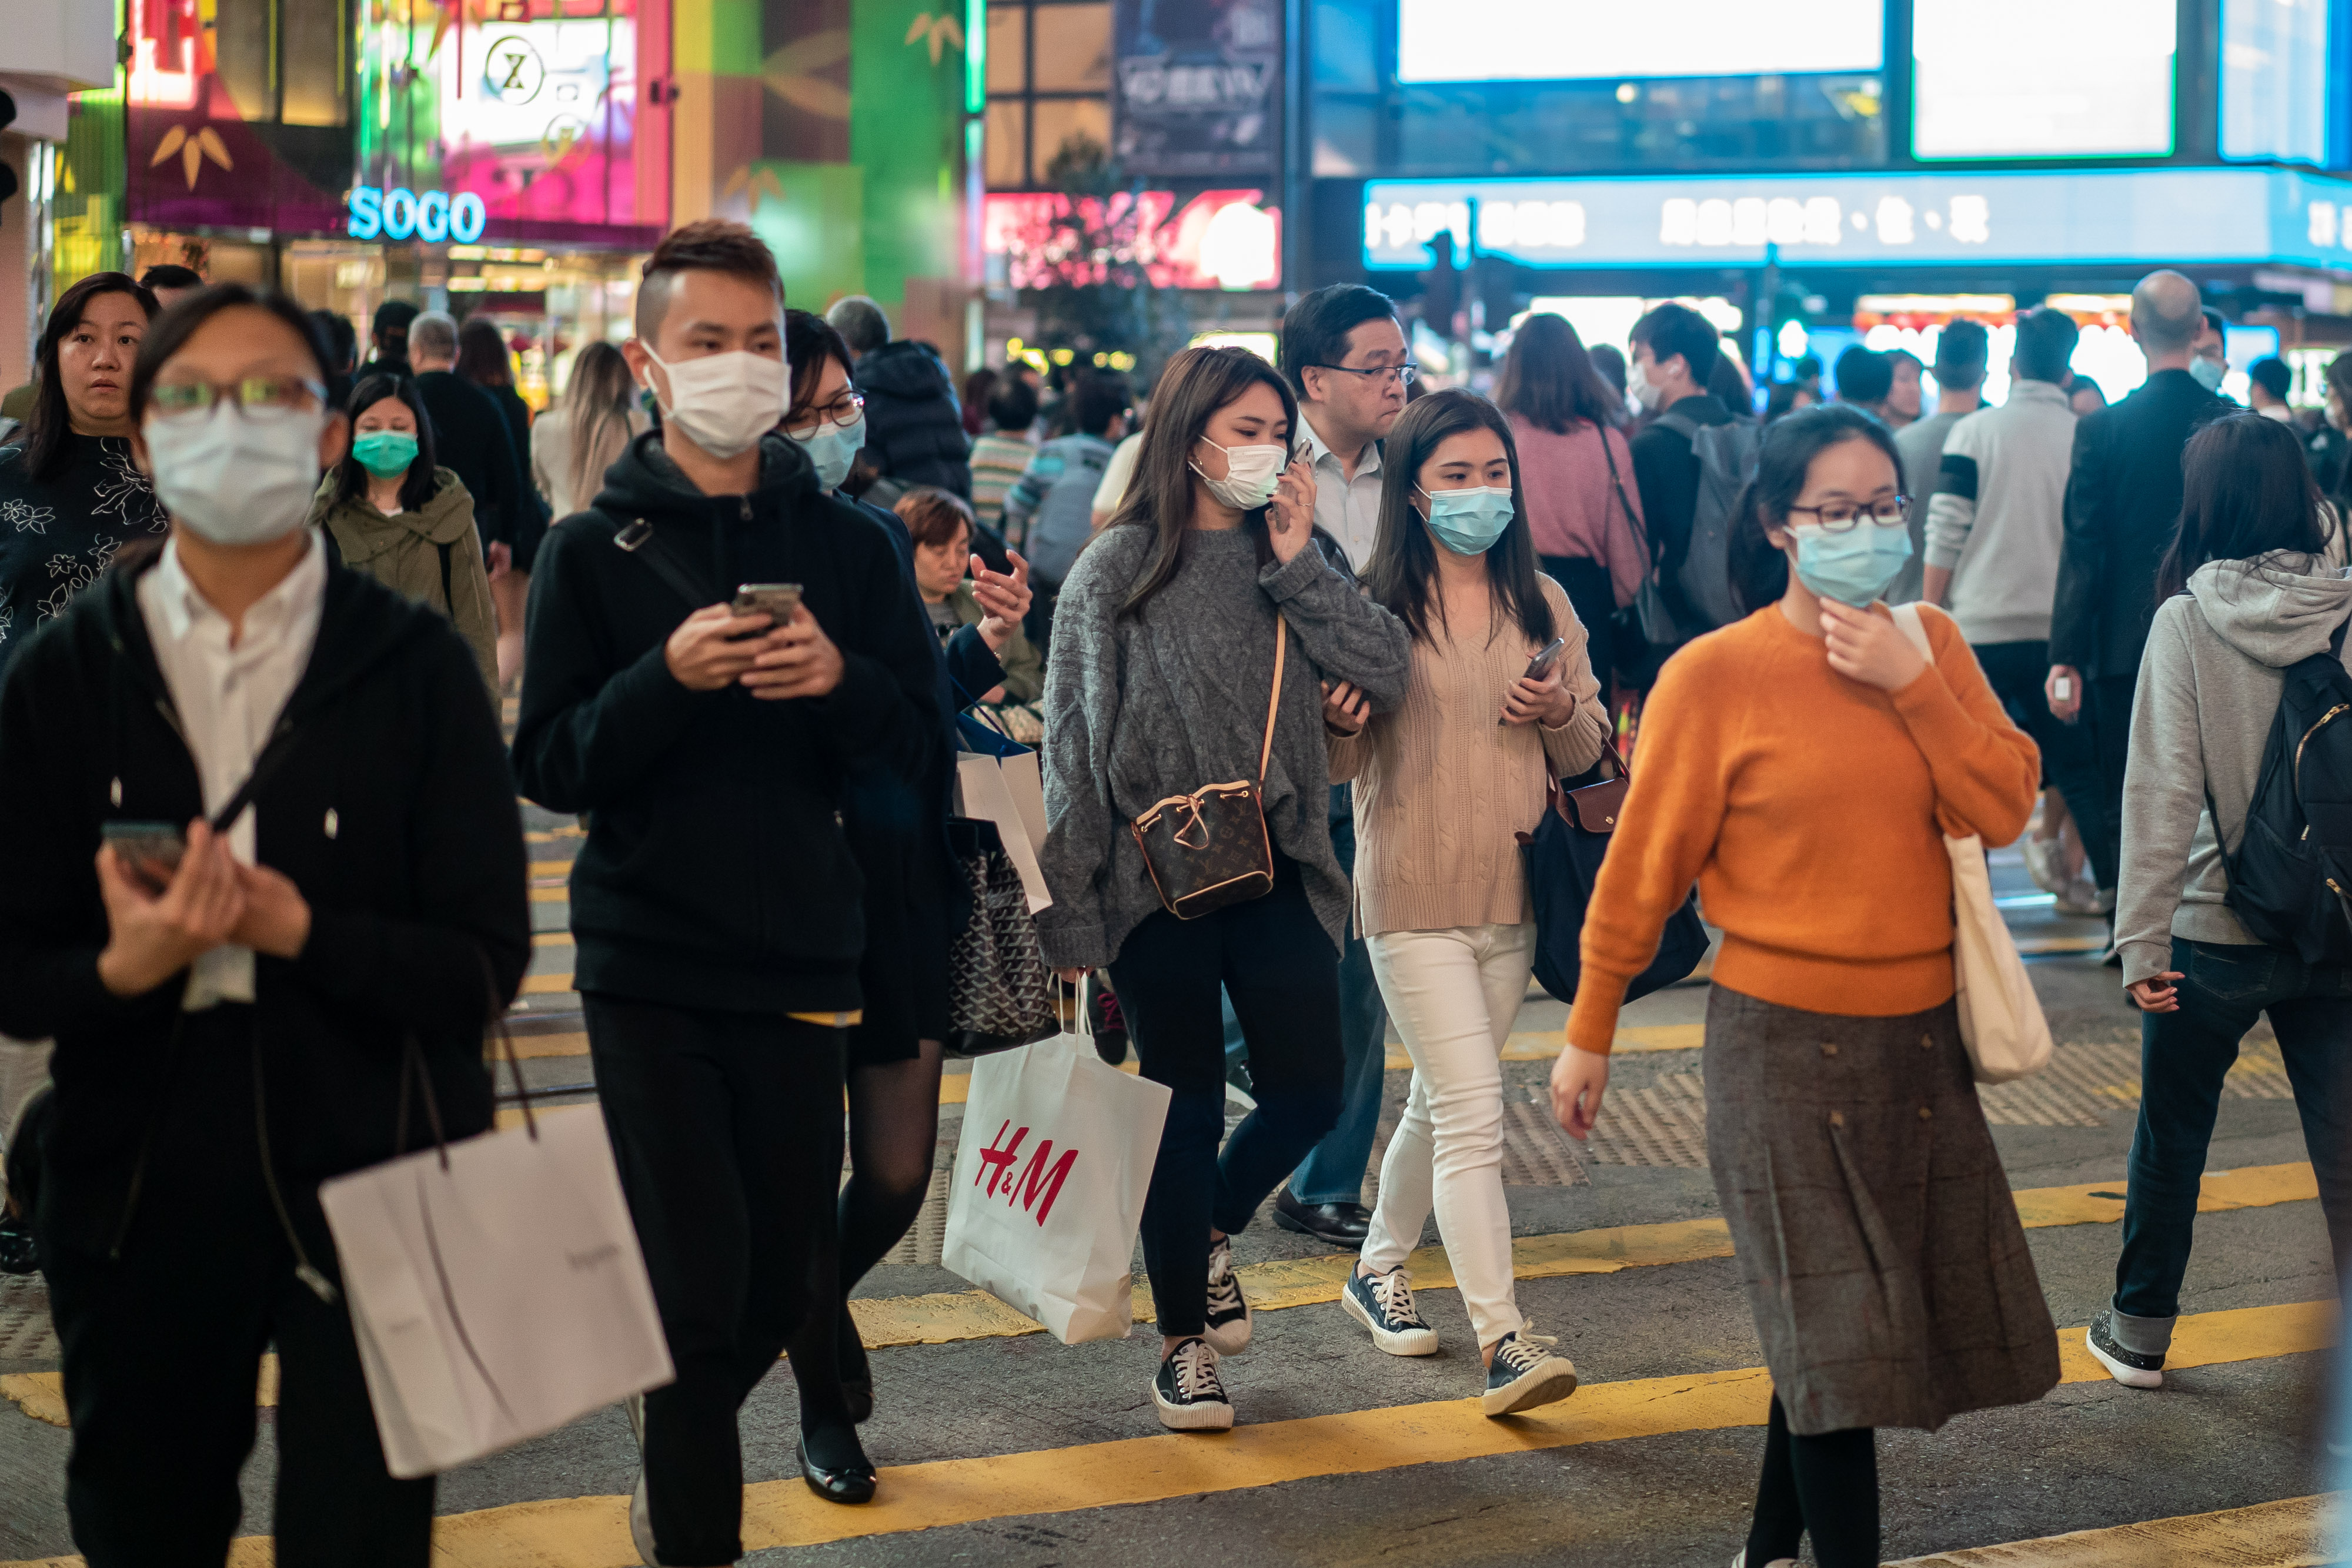 Pedestrians wear face masks as they walk through a crosswalk in Causeway Bay on January 23, 2020 in Hong Kong.